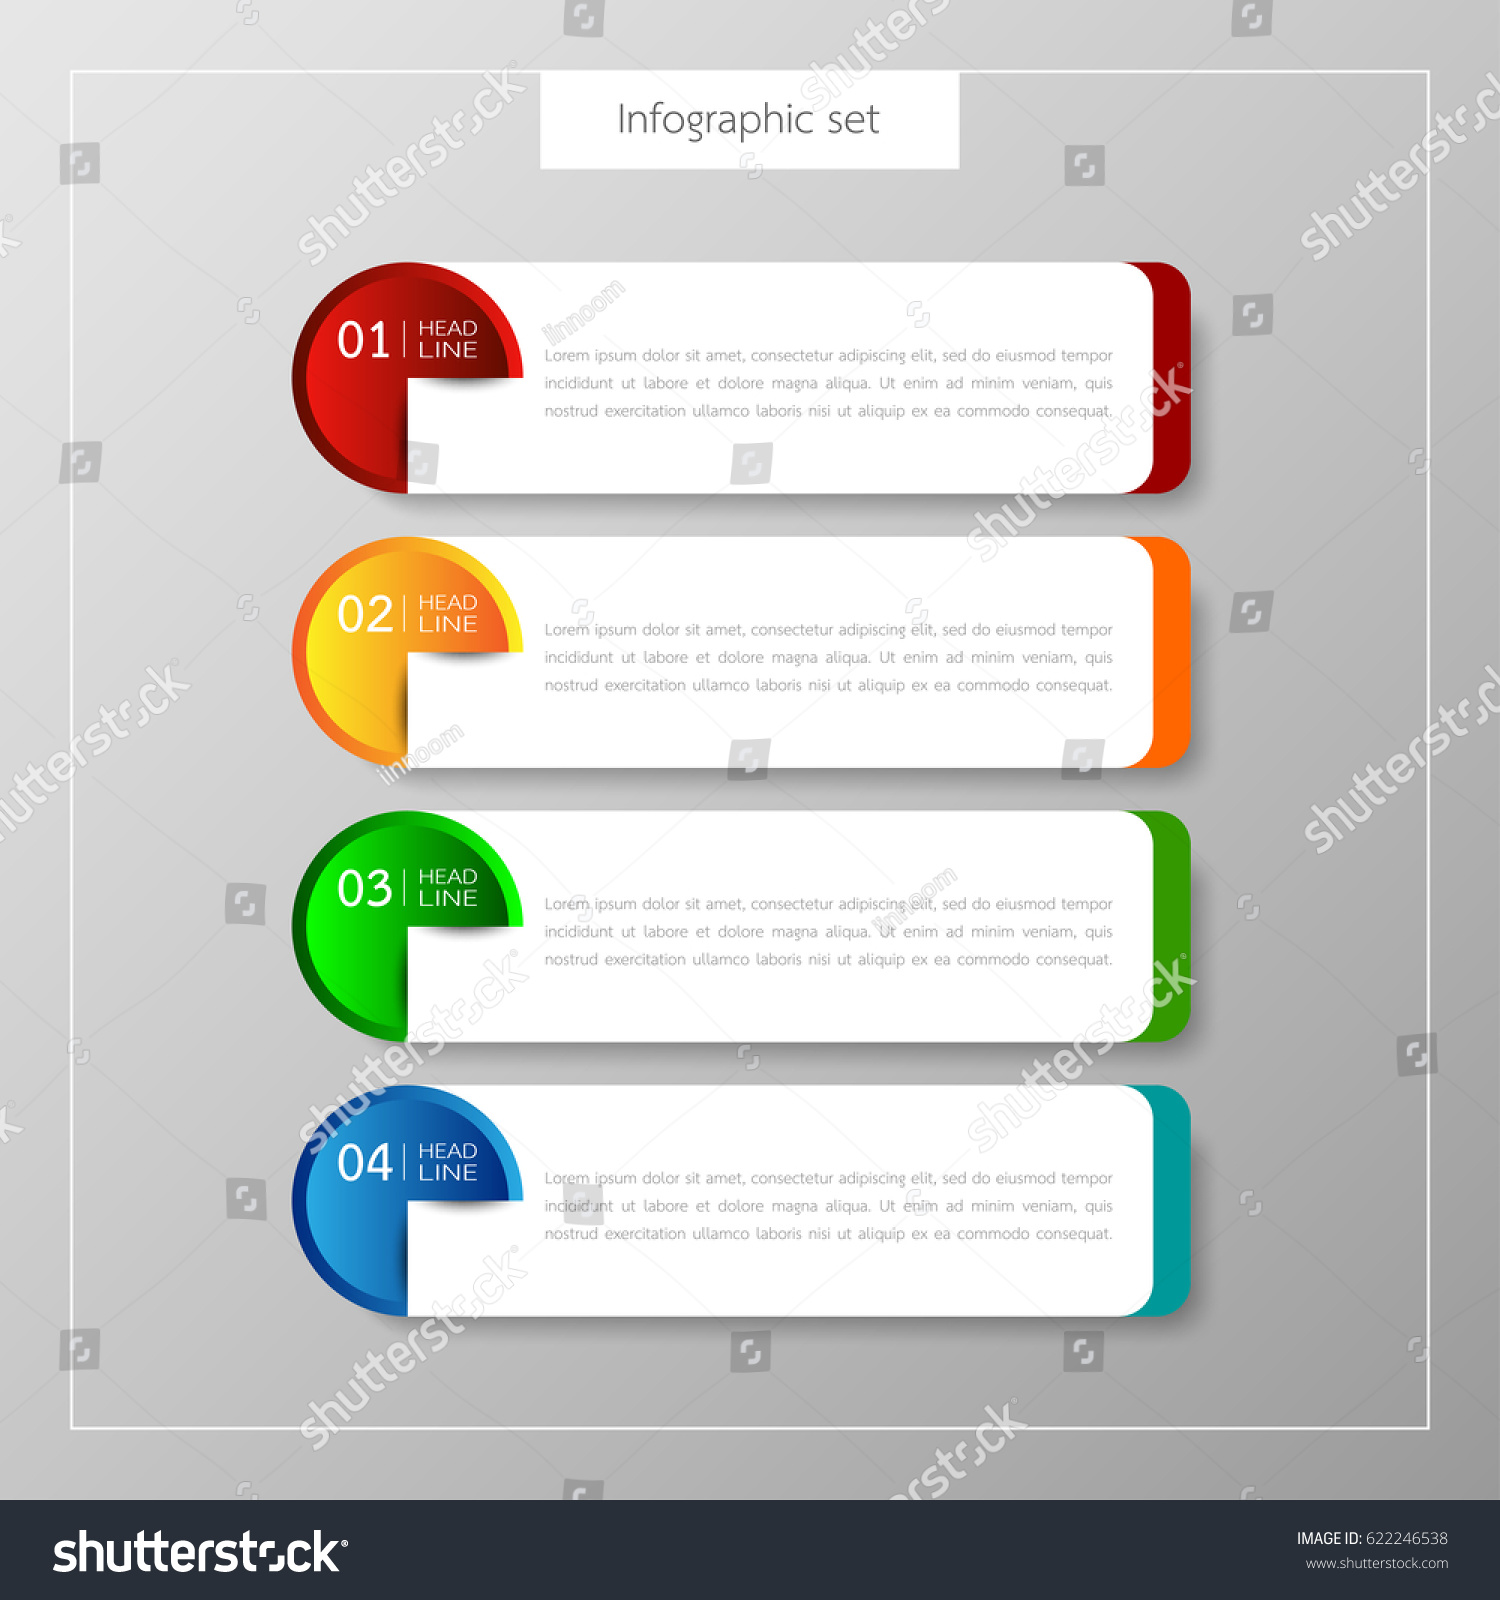 Business card box template vector awesome graphic library business card box template vector infographic button template banner set colorful stock photo photo rh shutterstock com reheart Image collections